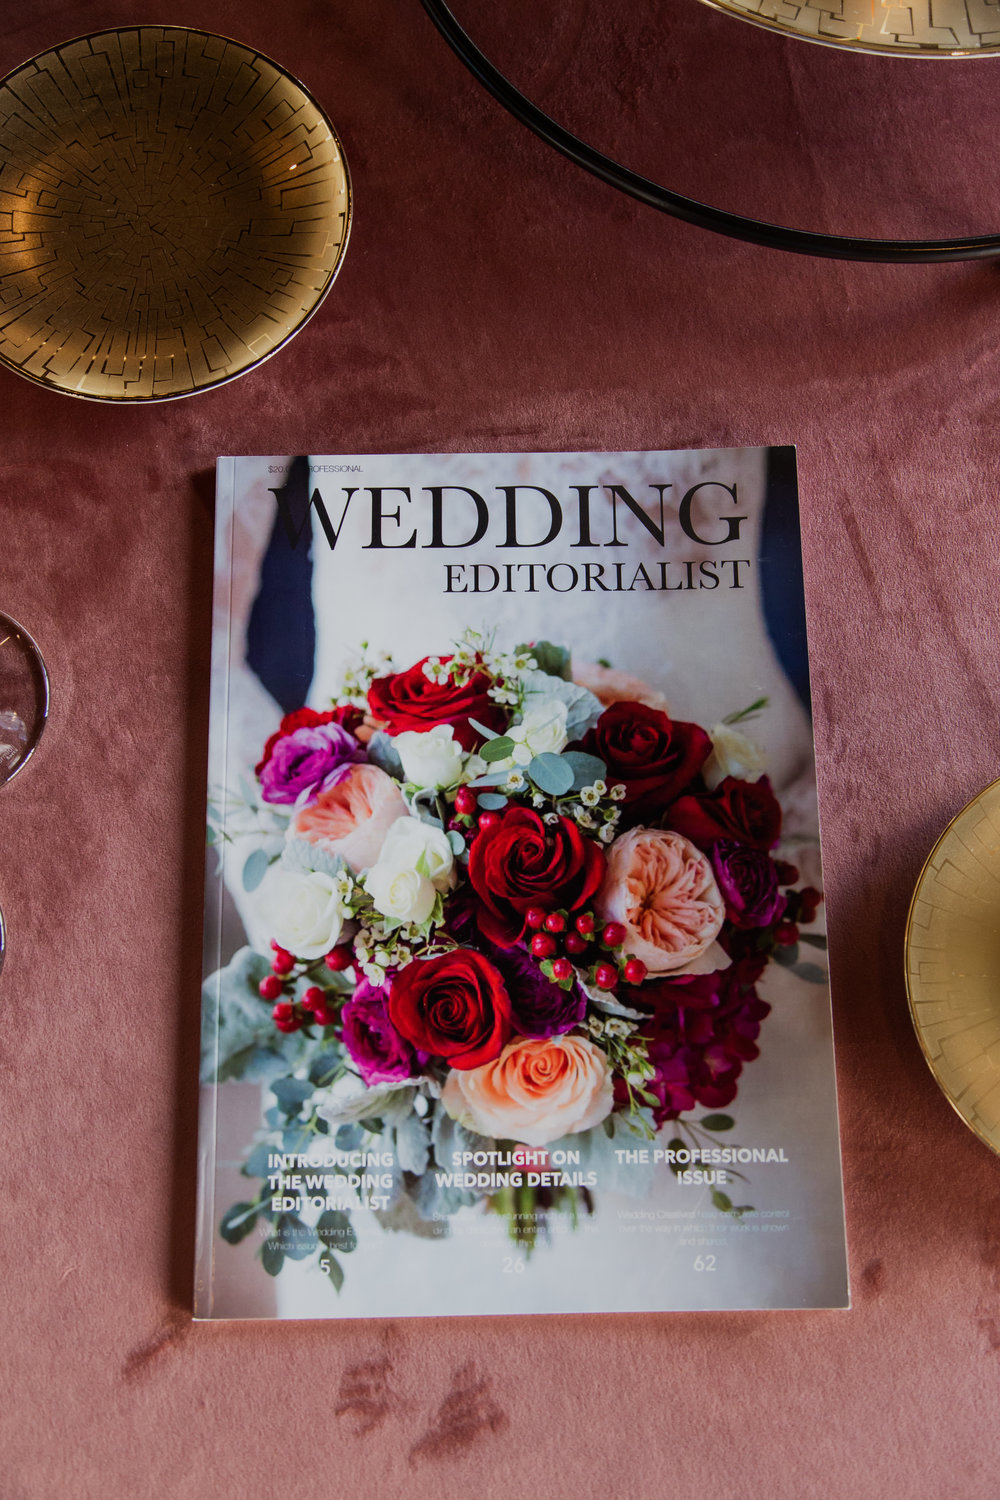 Personalized wedding magazines! Made to order for couples in love. Photo by Adam Frazier.